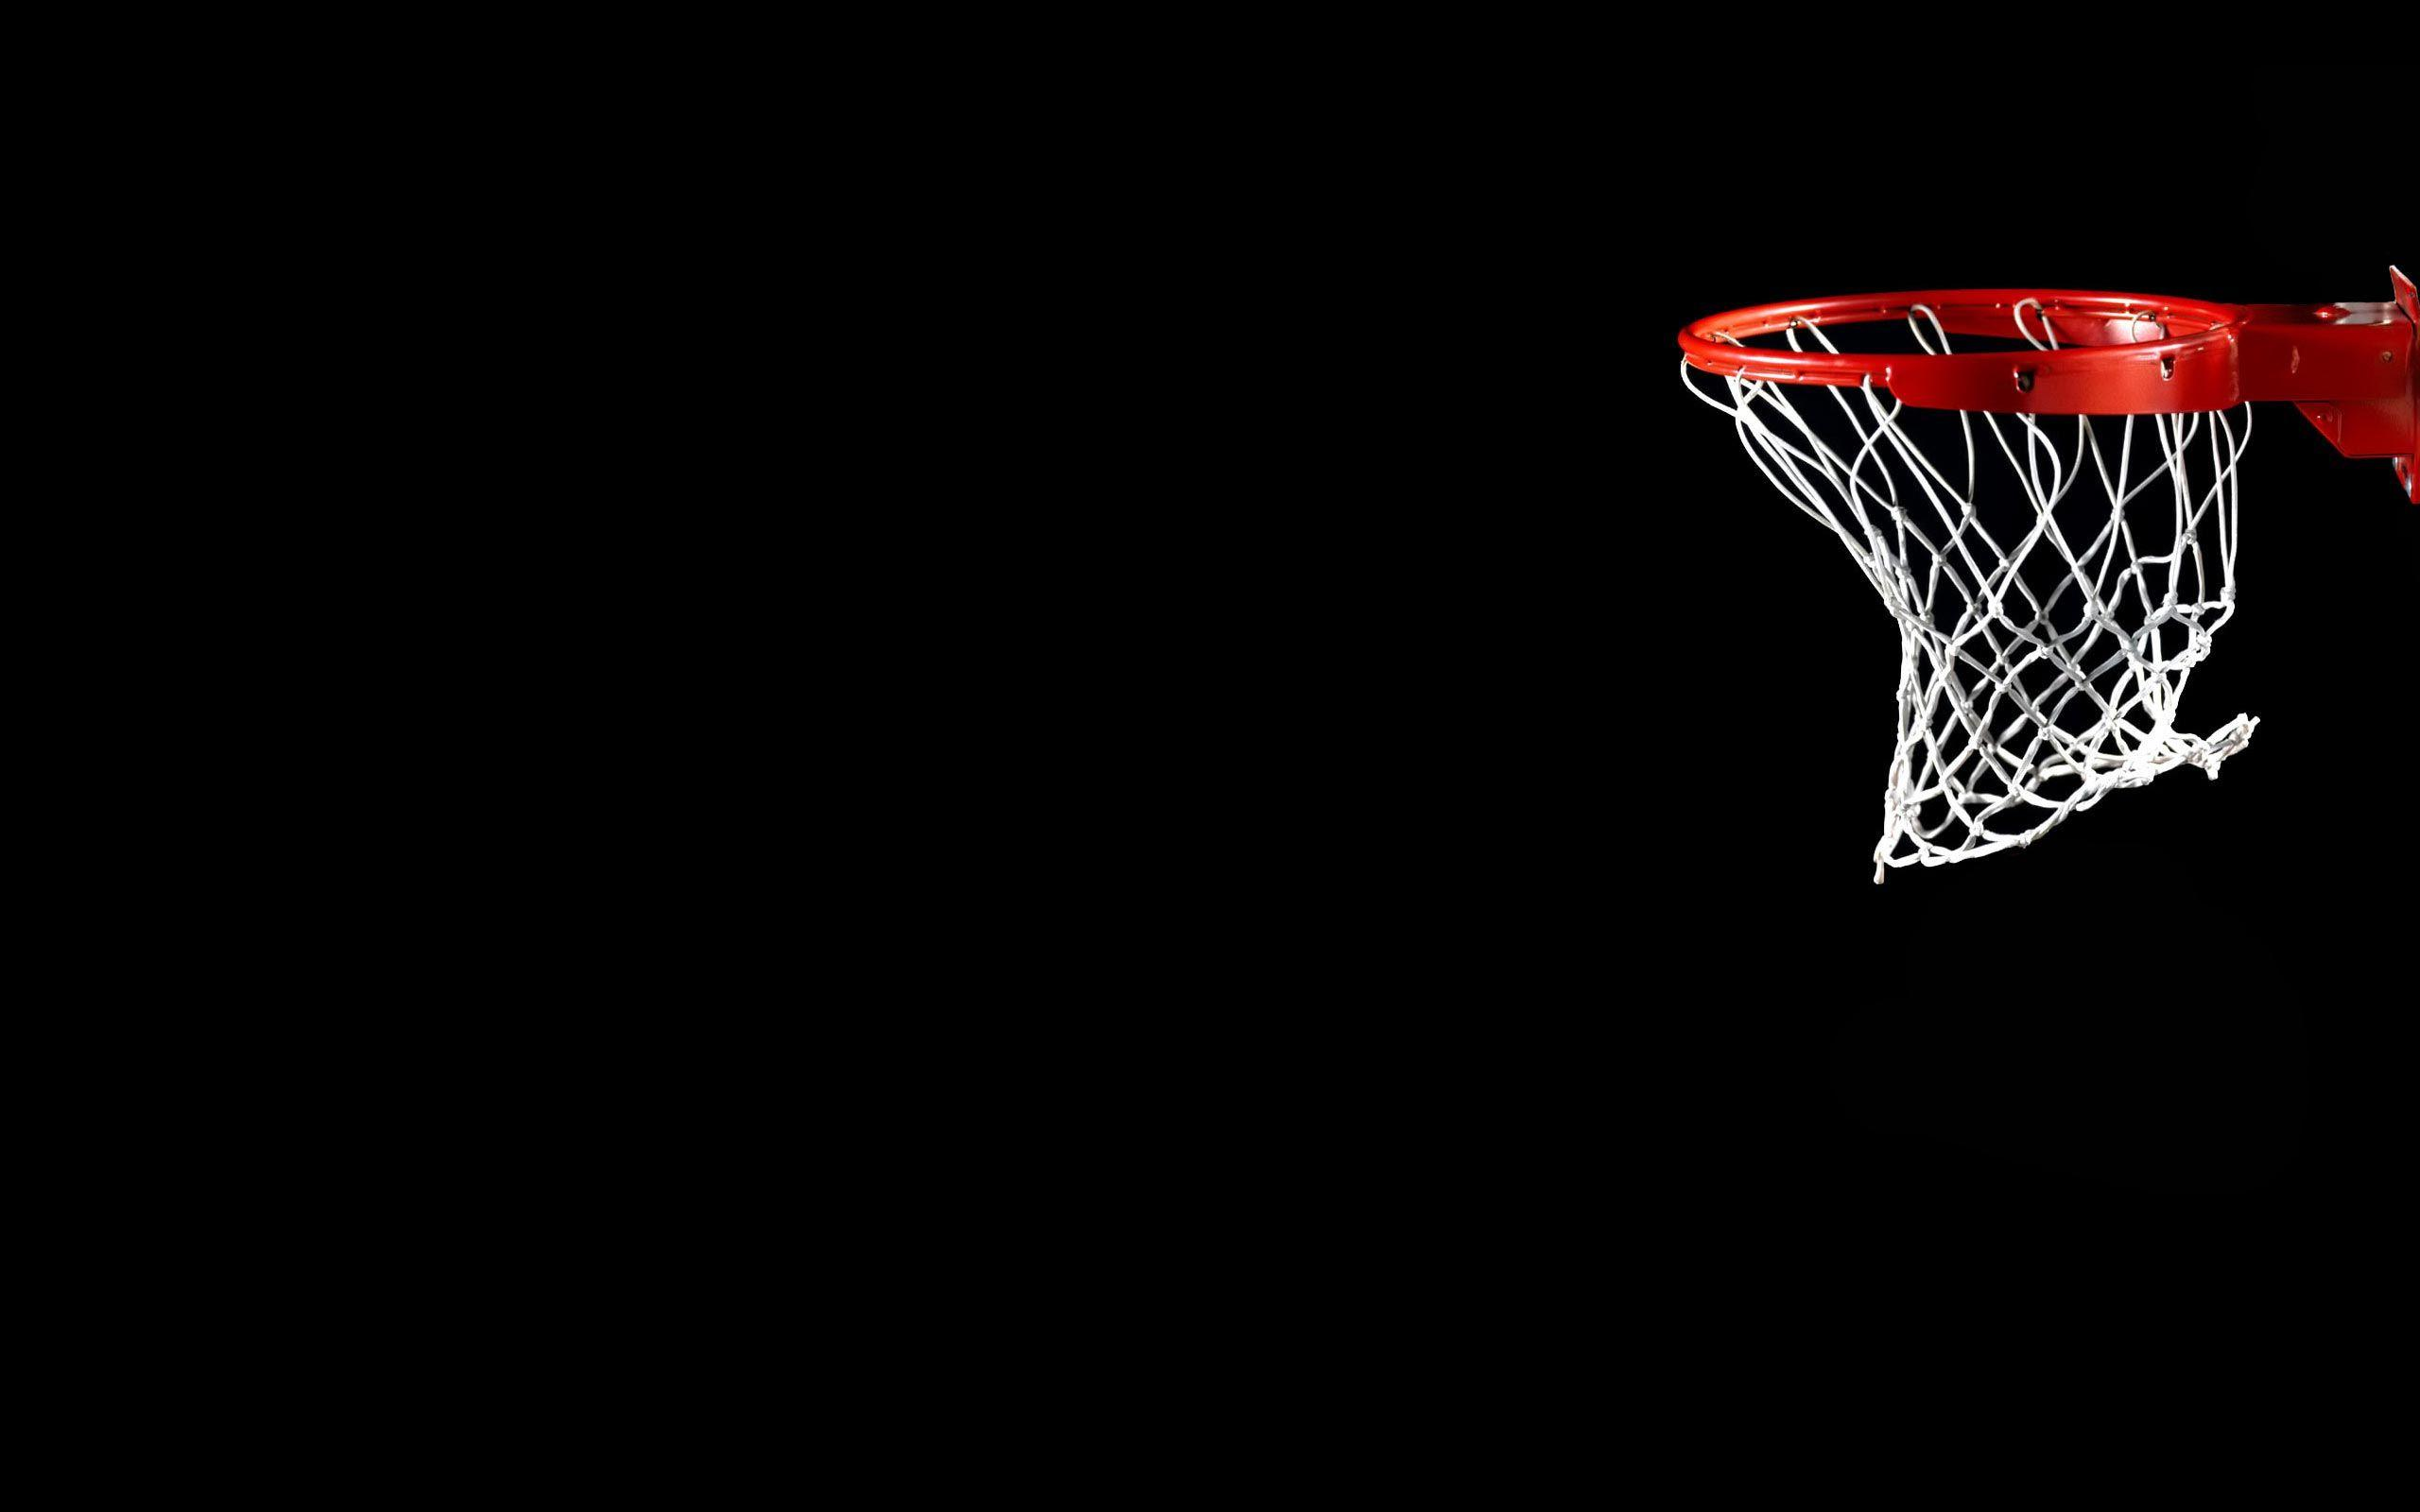 Basketball Wide Wallpapers Group with 50 items